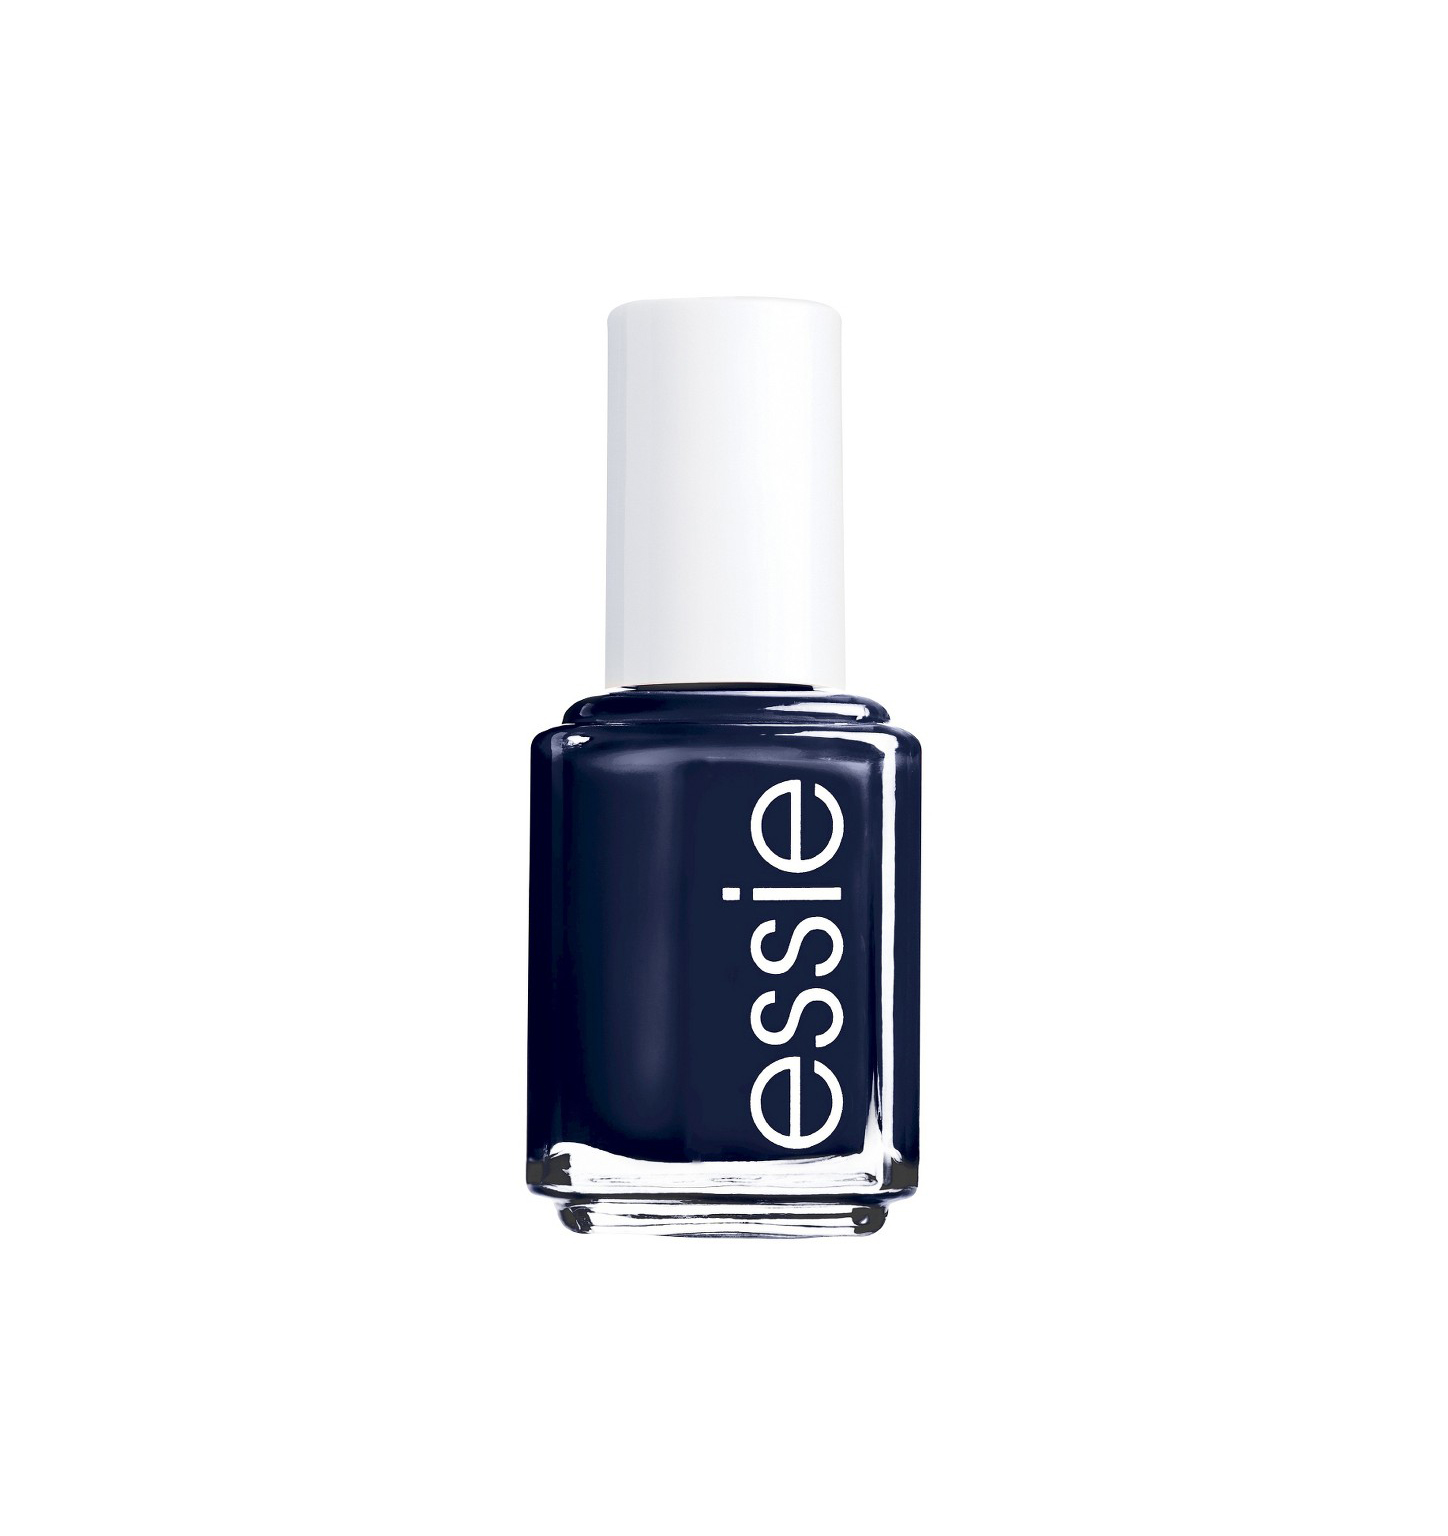 Essie in After School Boy Blazer